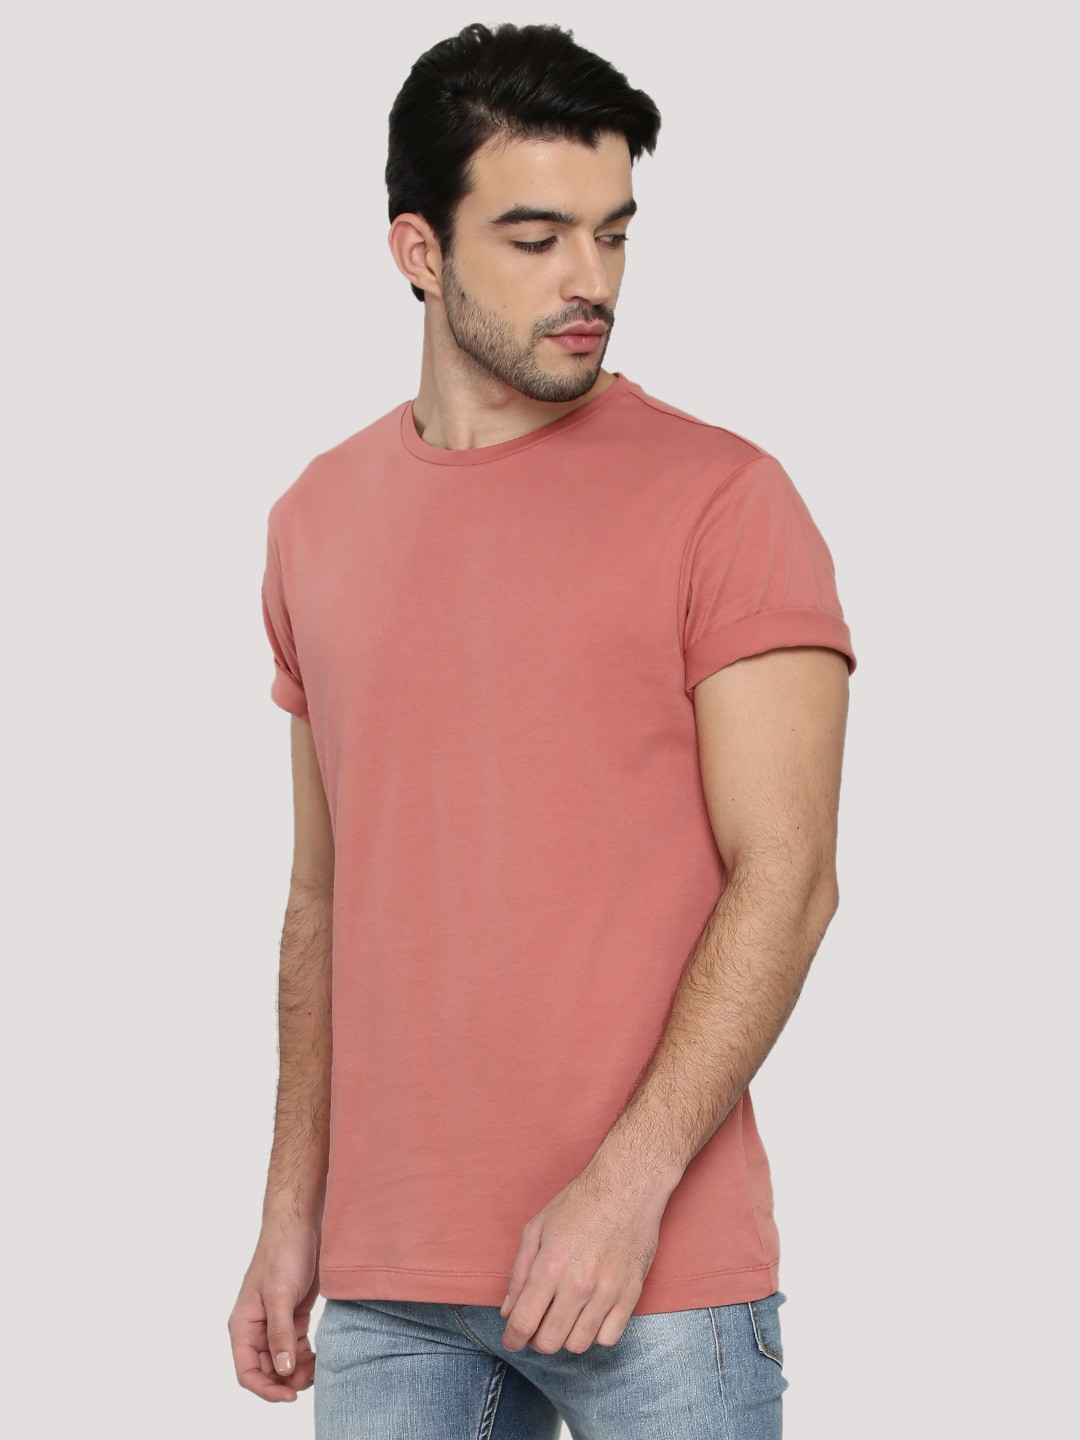 Mens shirt online shopping in india